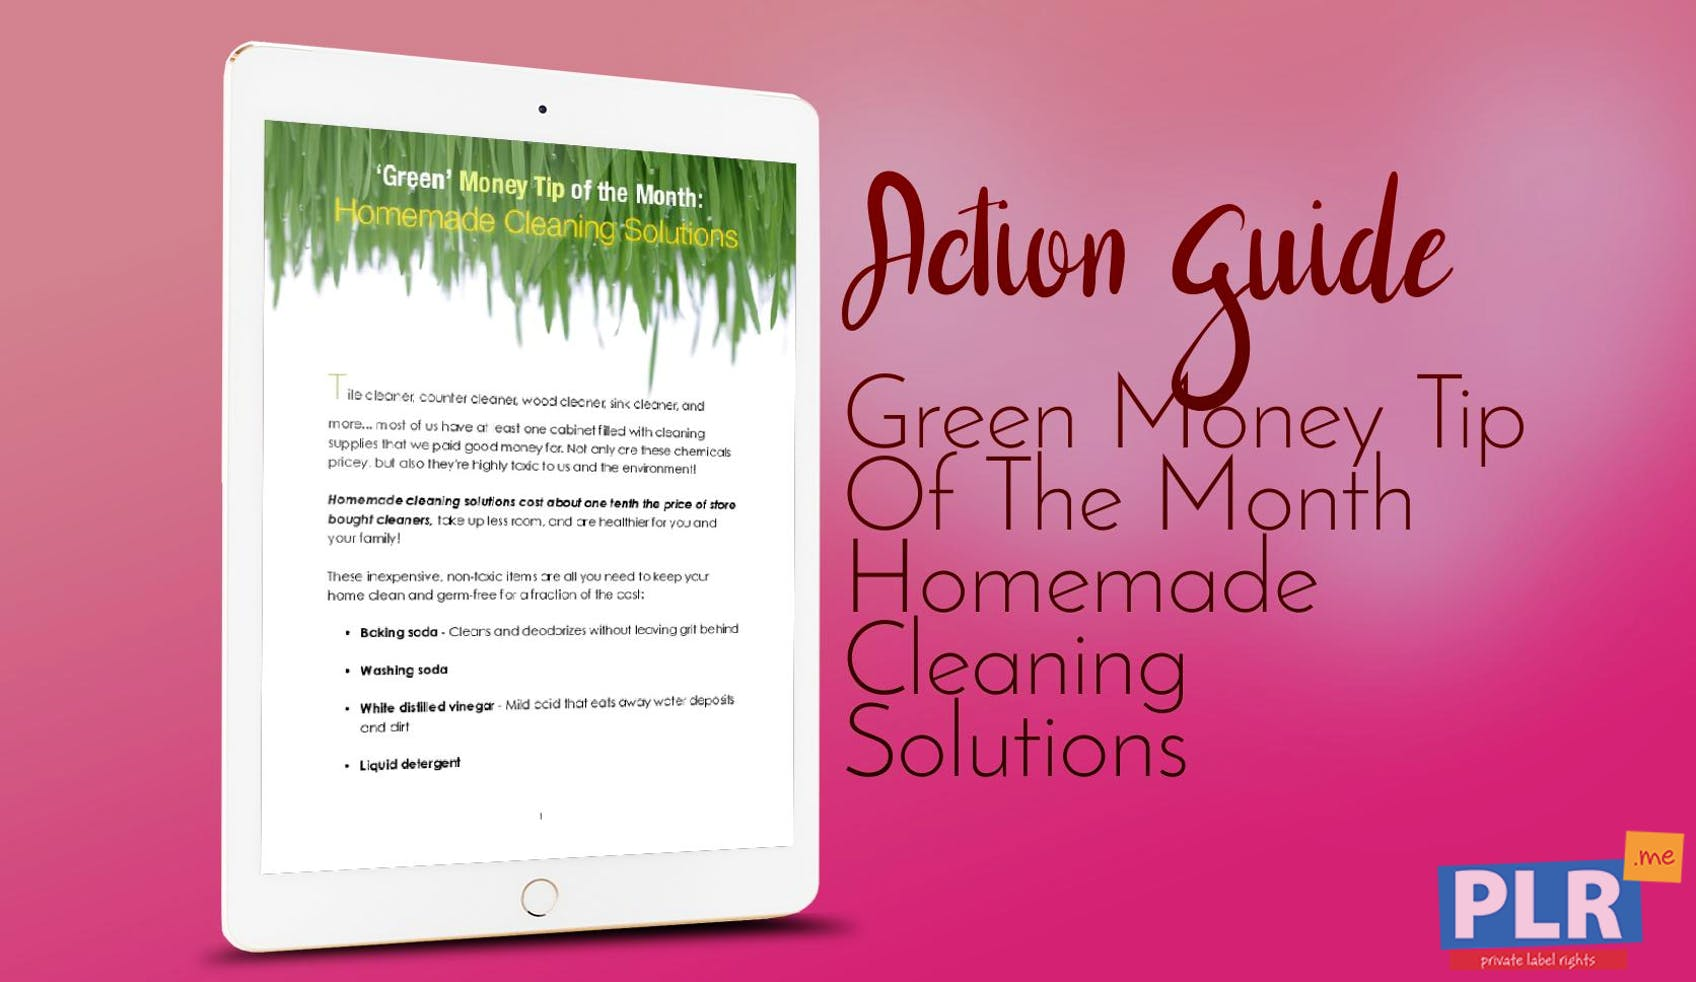 Green Money Tip Of The Month Homemade Cleaning Solutions